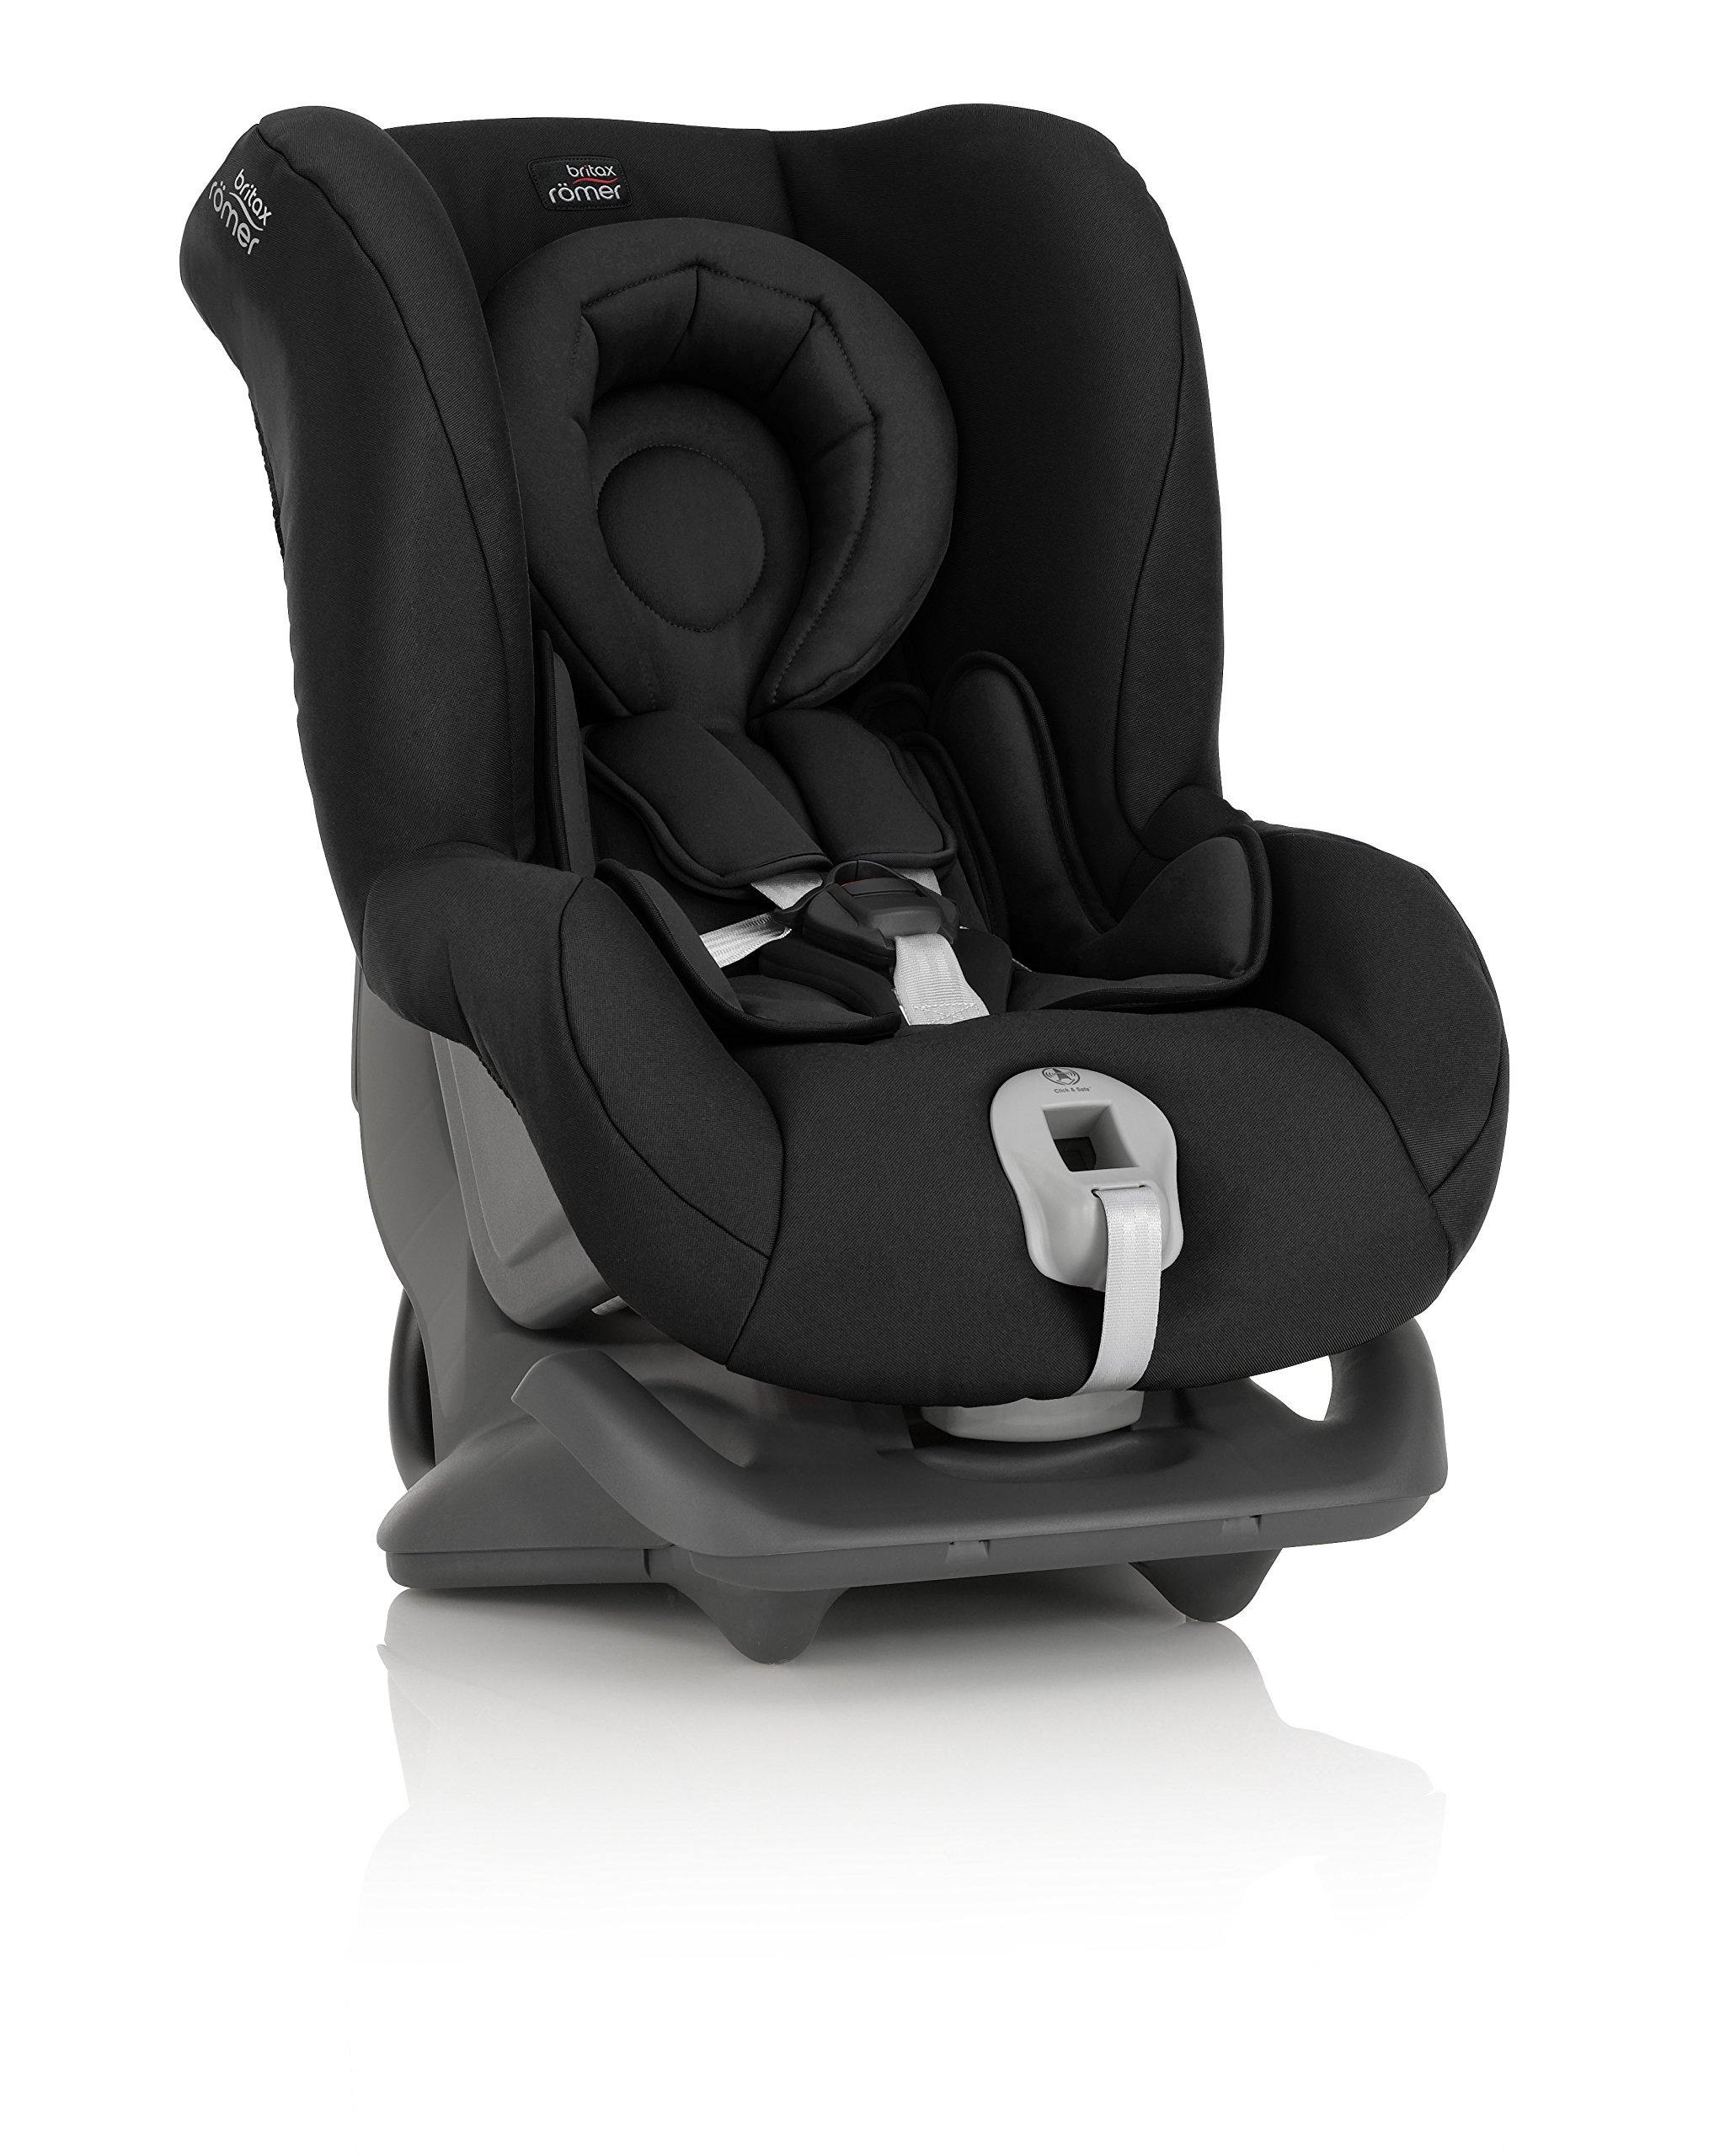 Britax Römer FIRST CLASS PLUS Group 0+/1 (Birth-18kg) Car Seat - Cosmos Black  Extended recline position when rearward facing - the safest way to travel Reassurance built-in - CLICK & SAFE harness tensioning confirmation Superior protection - side impact protection Plus performance chest pads and pitch control system 5